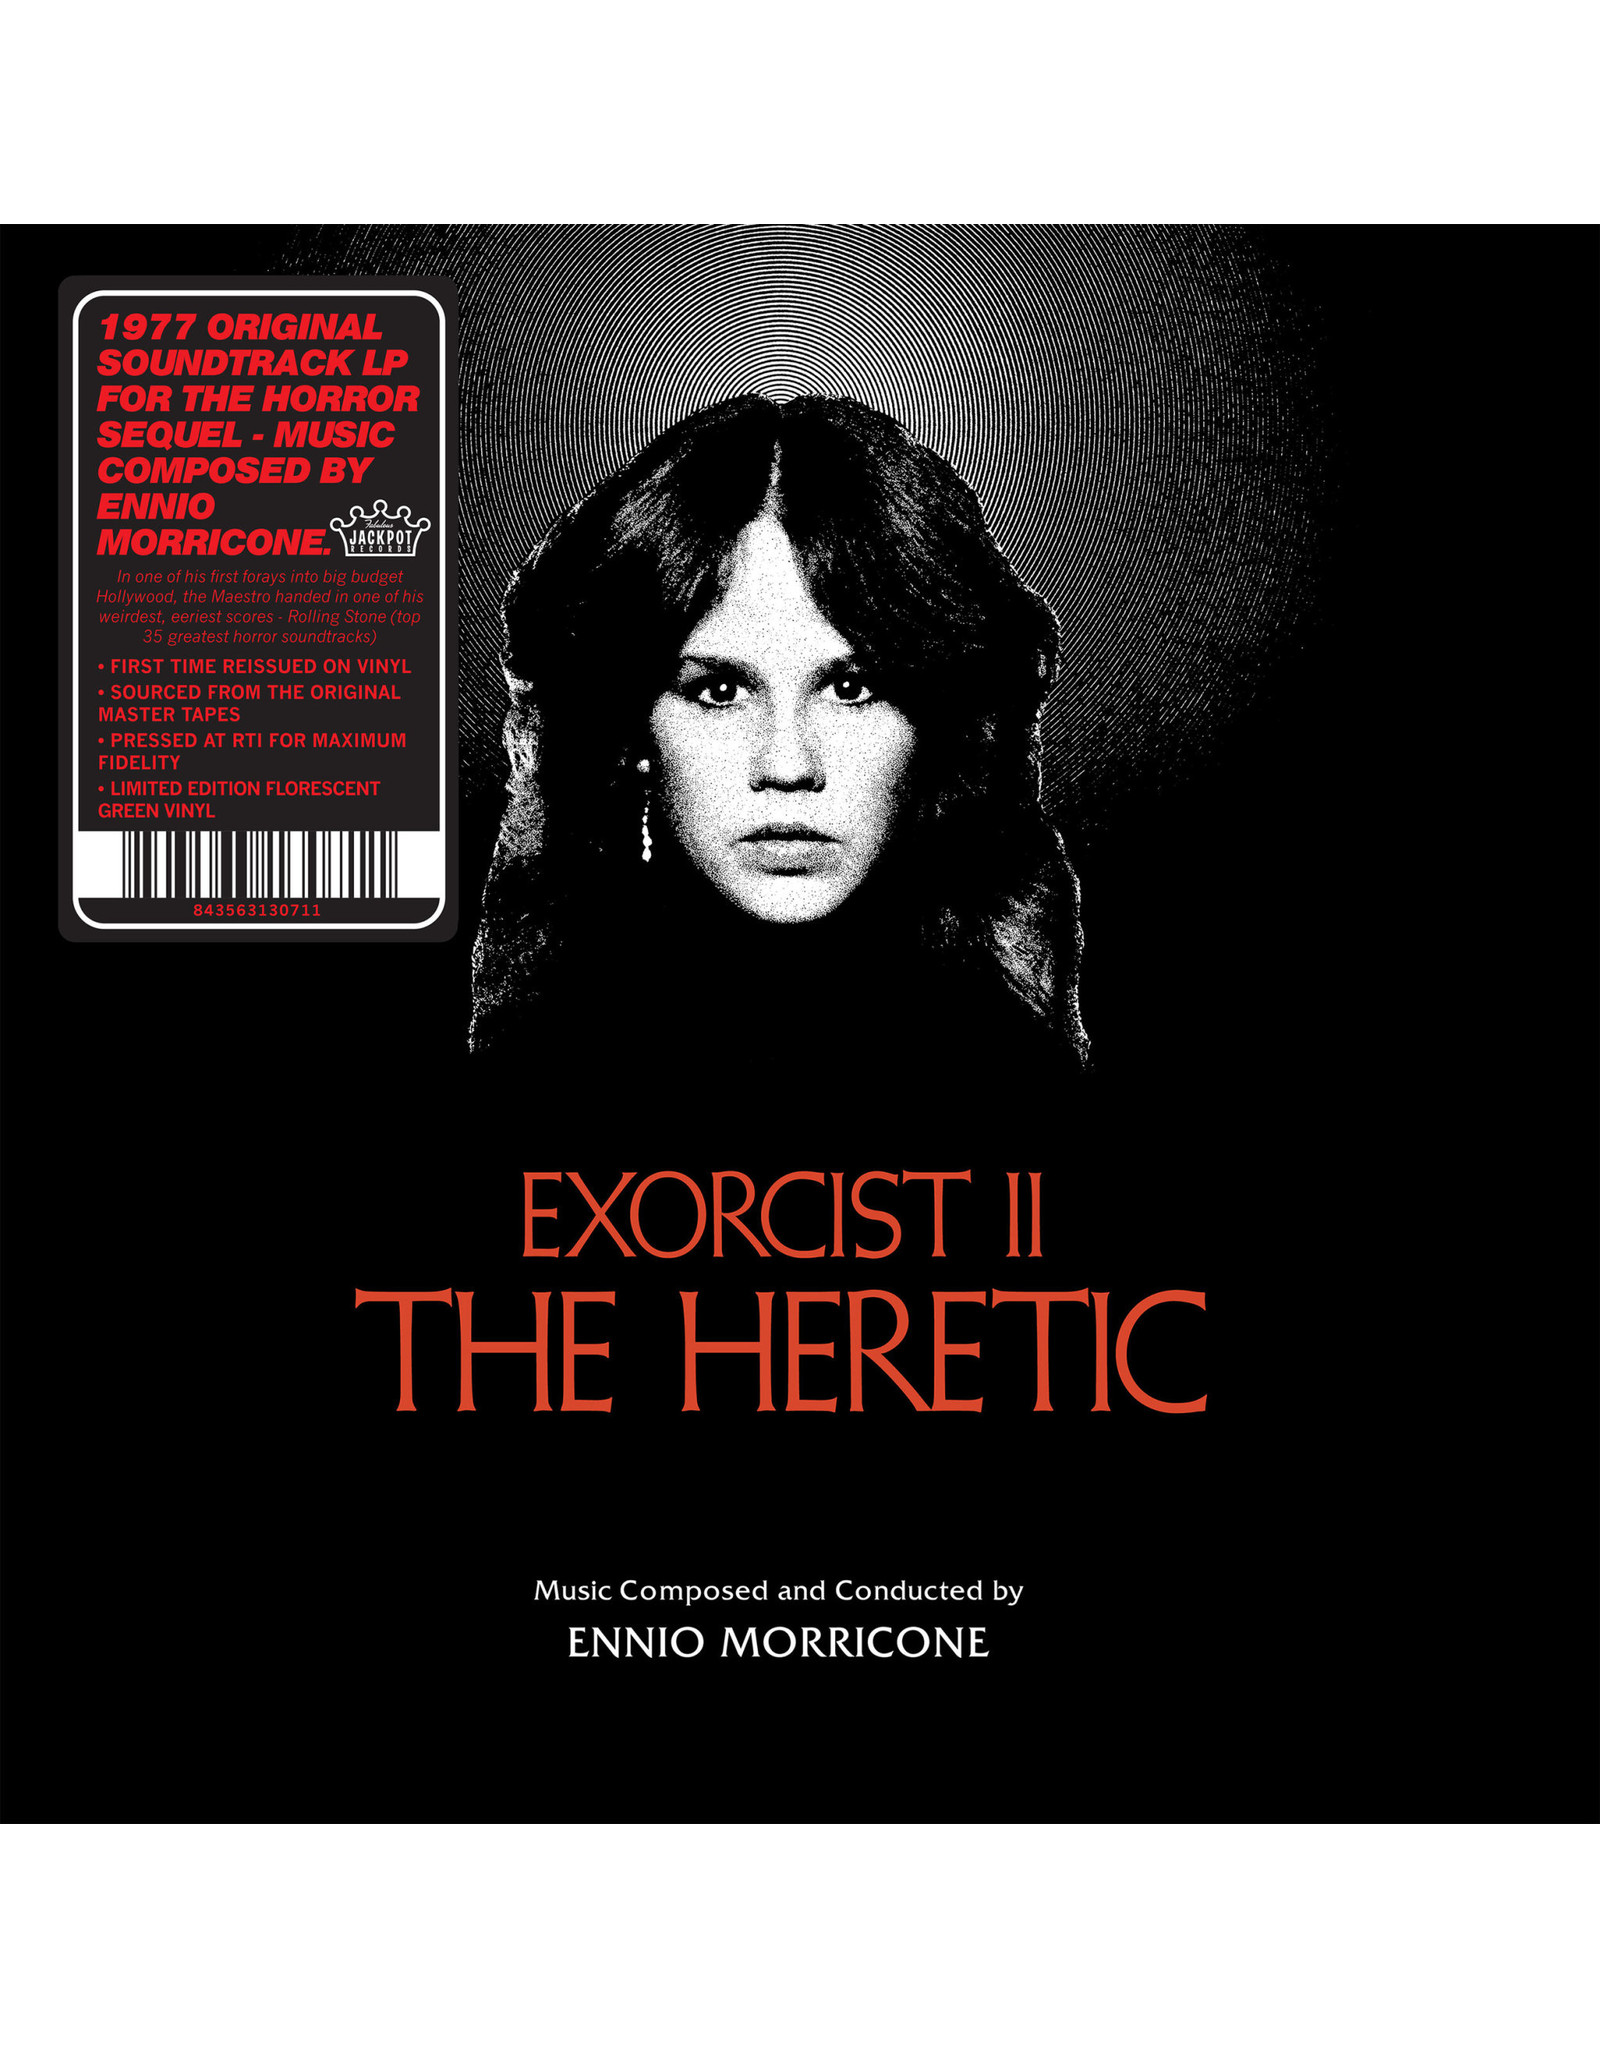 New Vinyl Ennio Morricone - Exorcist II: The Heretic OST (Colored) LP